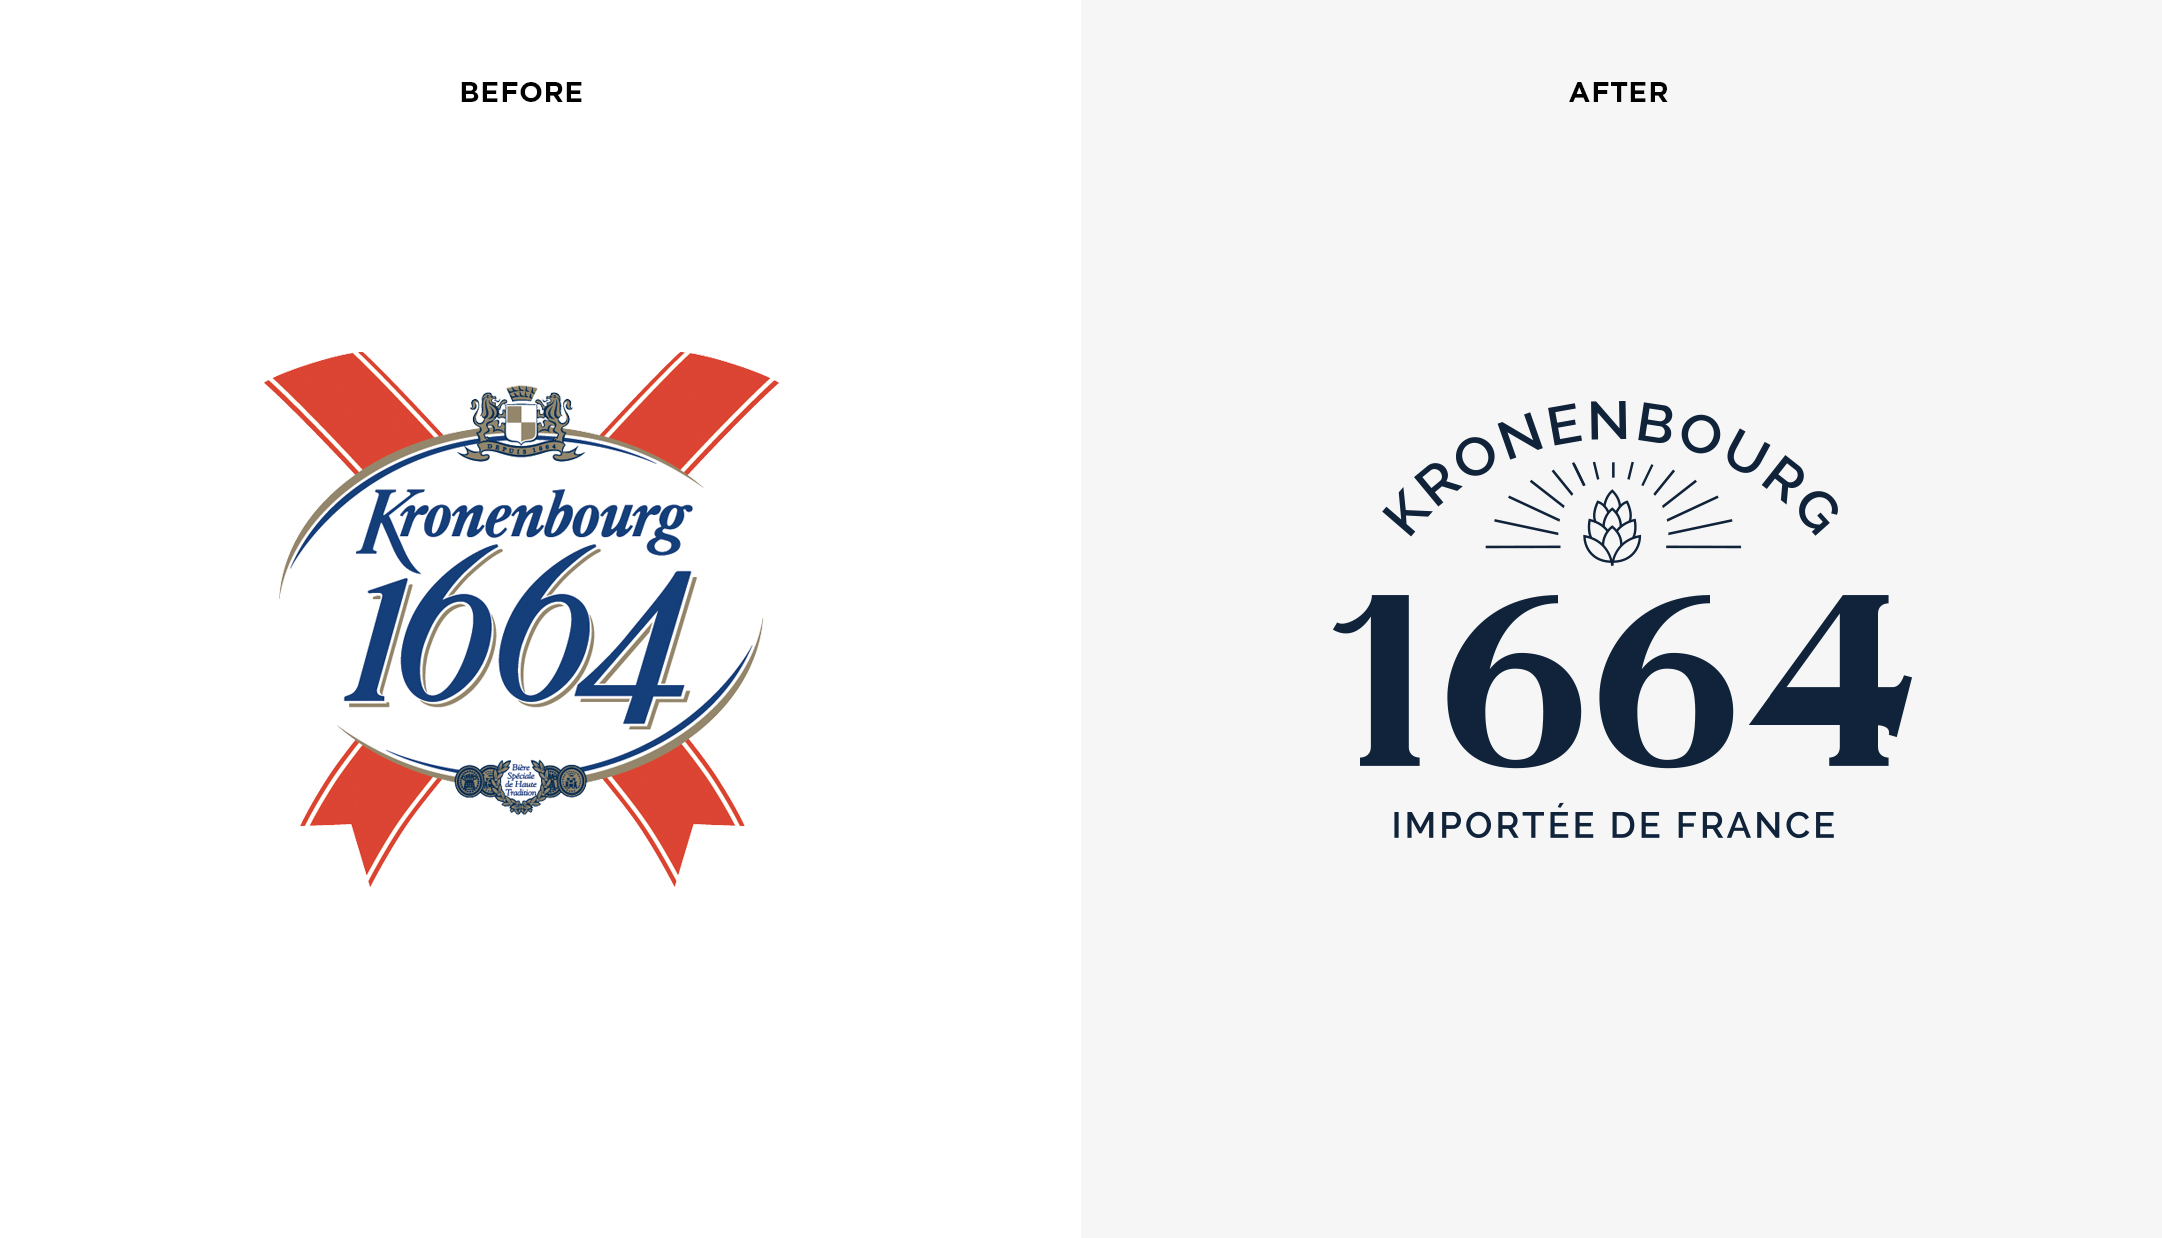 Logo comparison from old 1664 logo to new